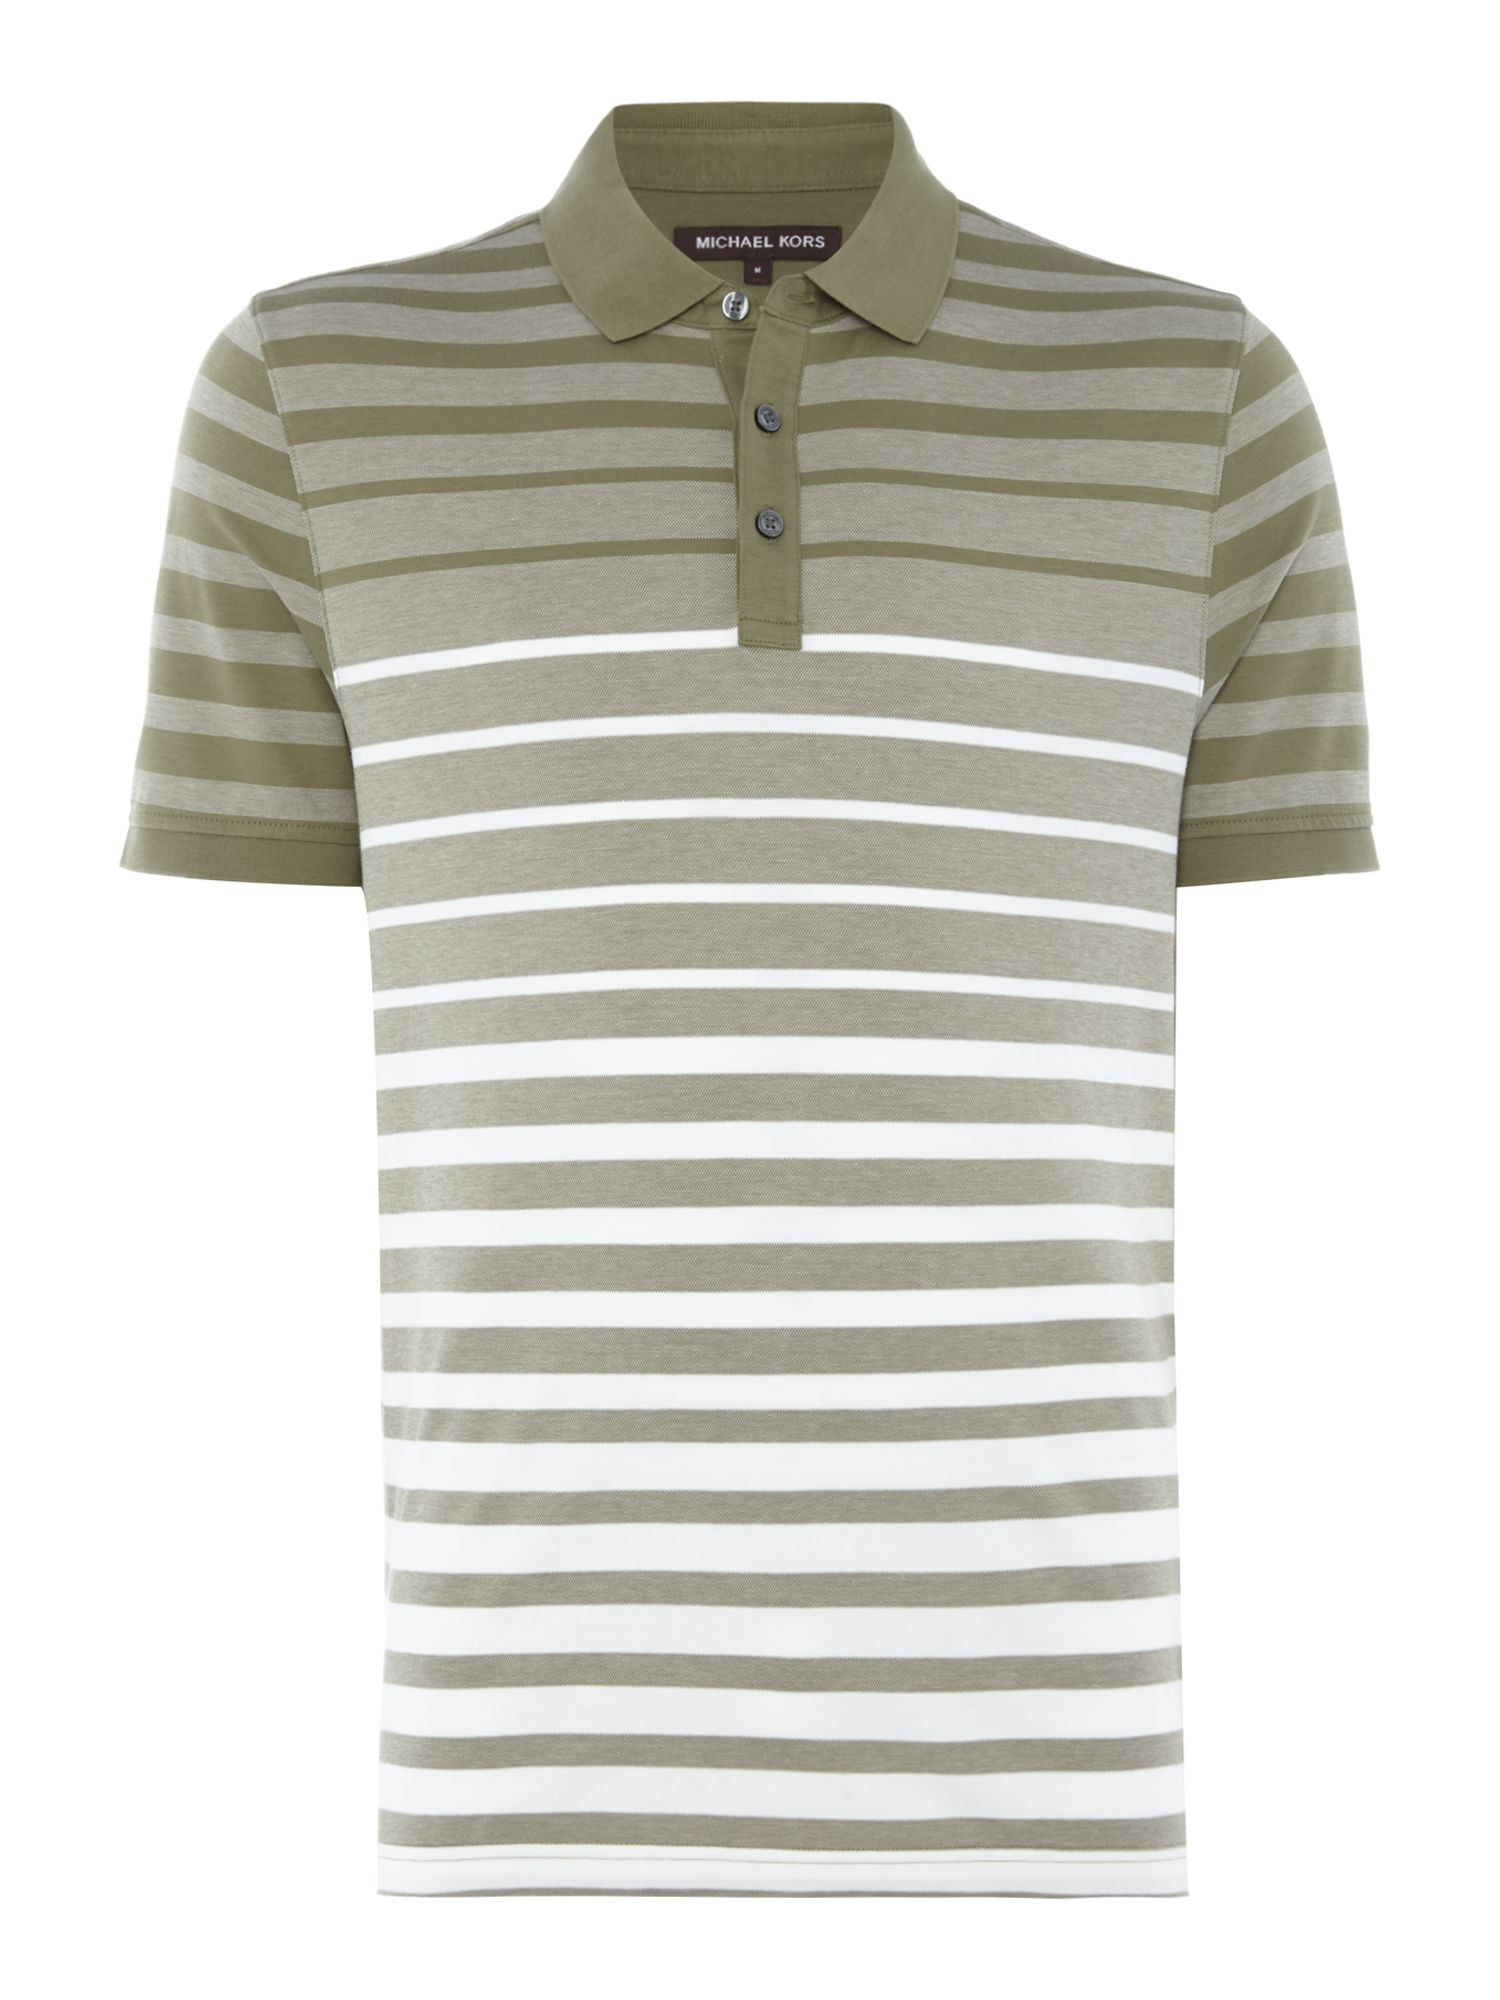 Men's Michael Kors Stiped Short Sleeve Polo Shirt, Green